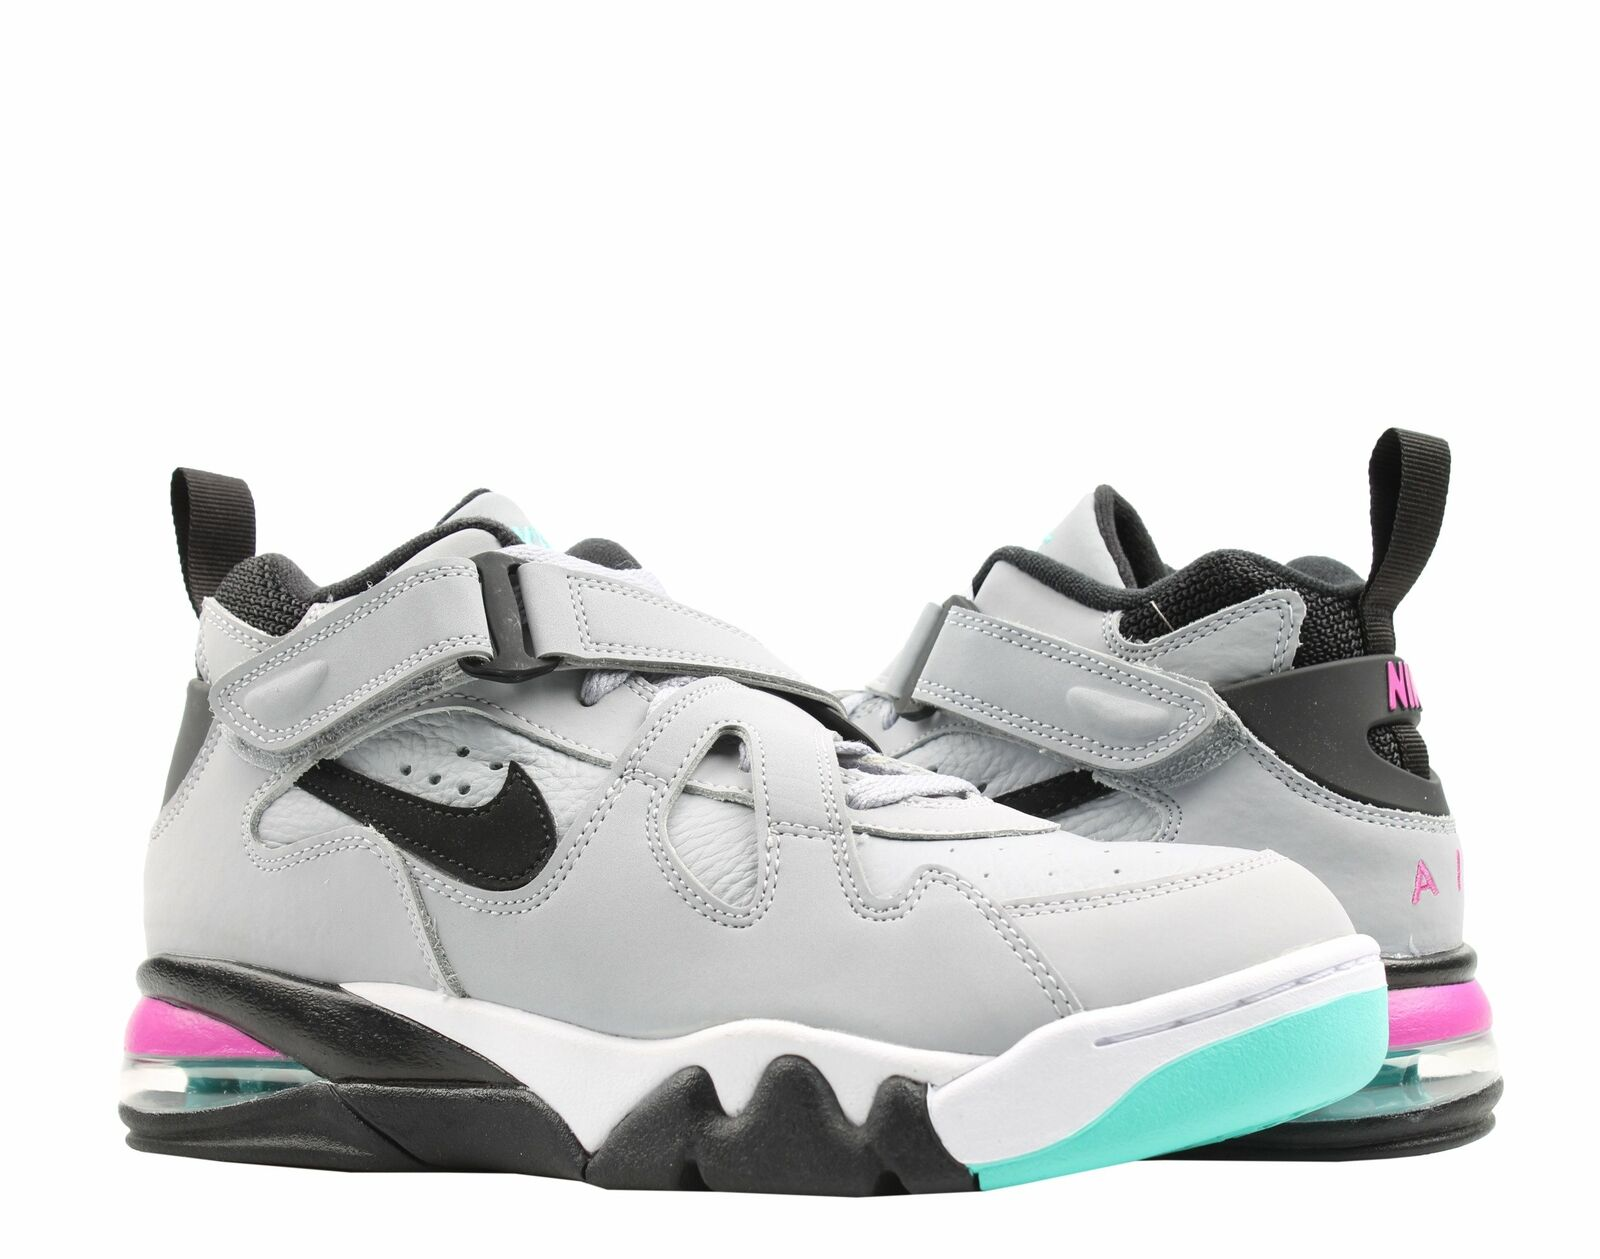 Nike Air Force Max CB Grey Black-Fuchsia Men's Basketball shoes AJ7922-003